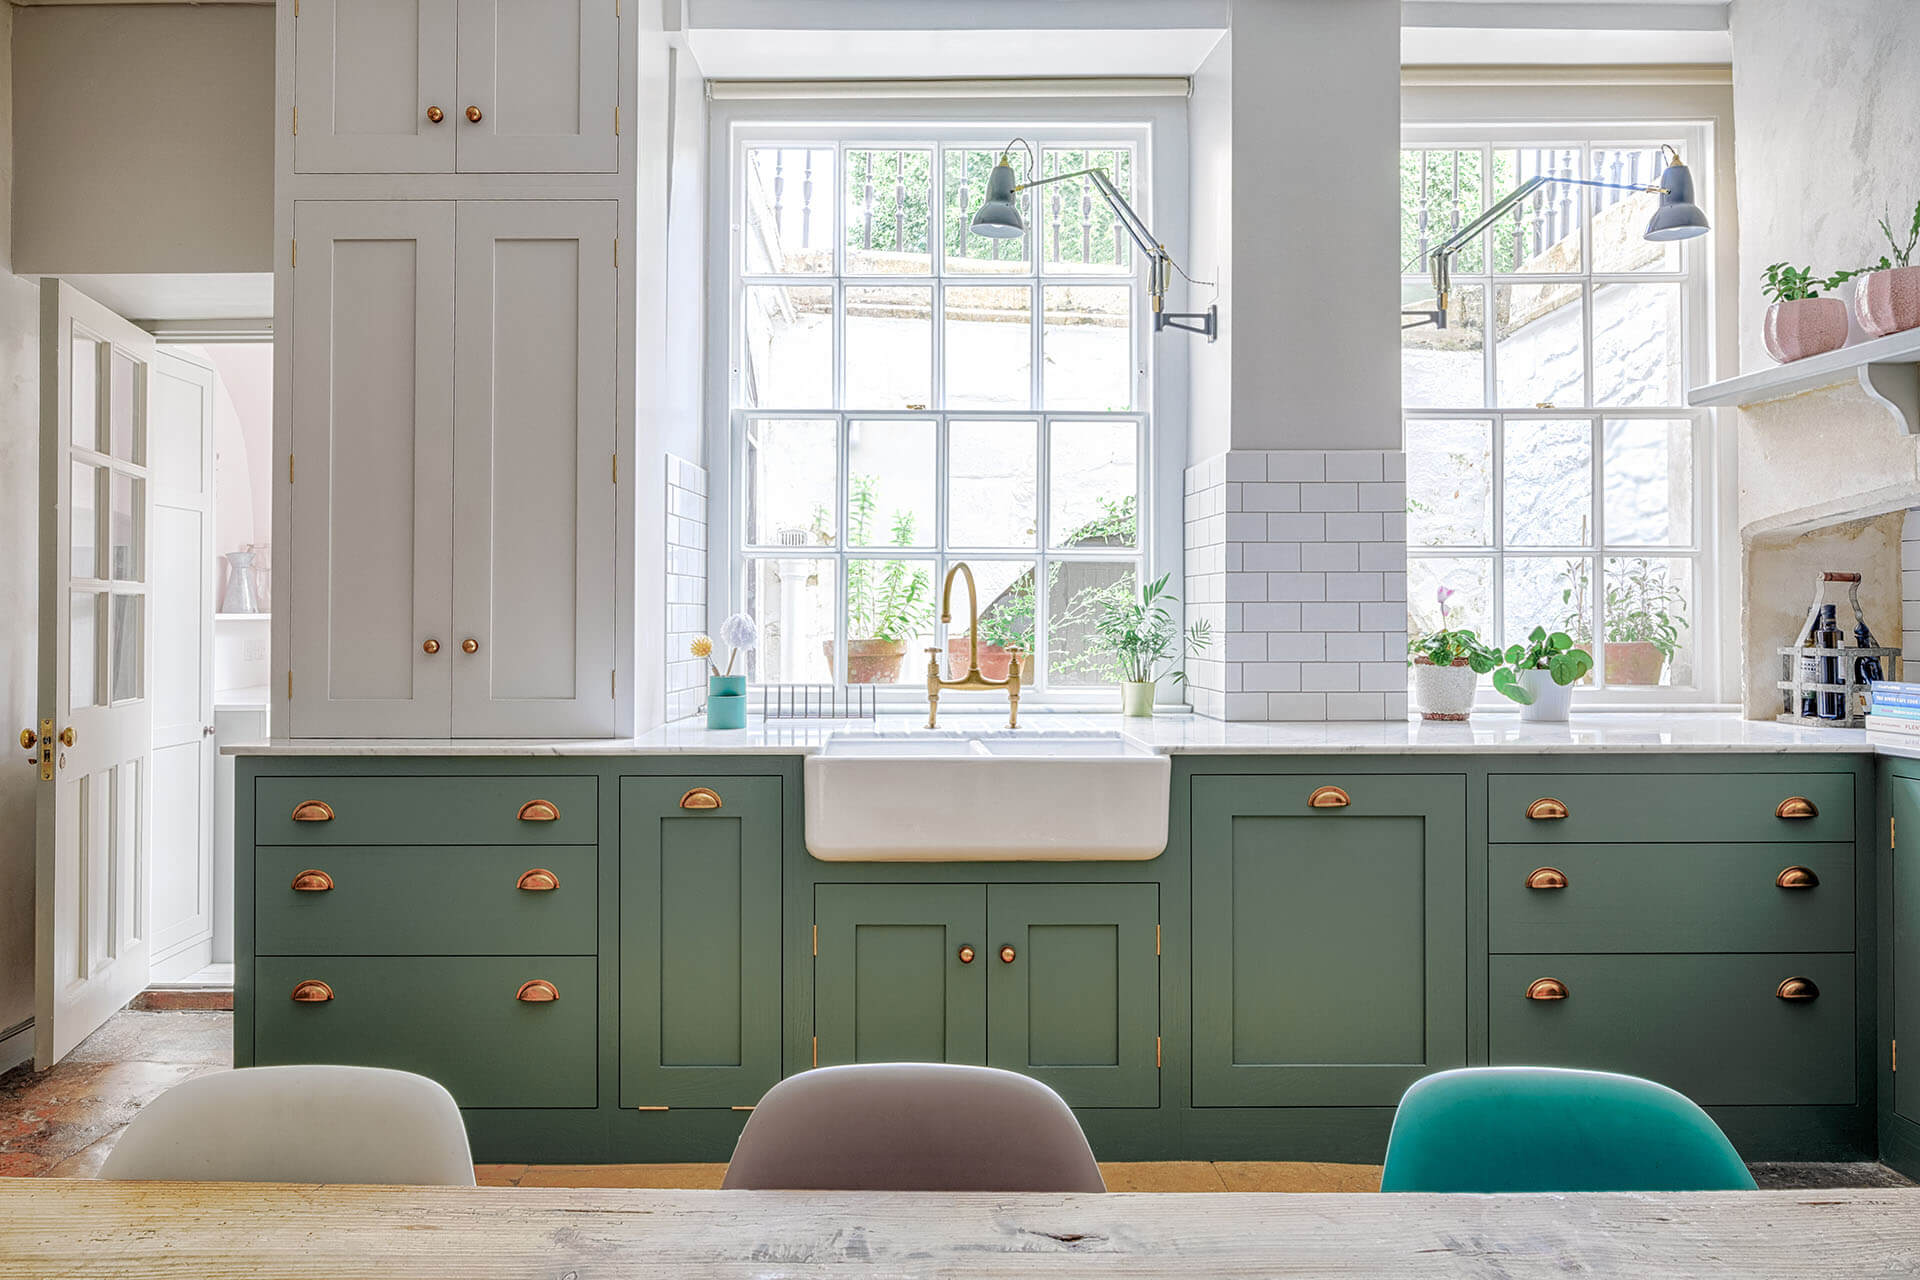 Green Shaker Kitchen with Brass Accents including an Aged Brass Tap from perrin & Rowe